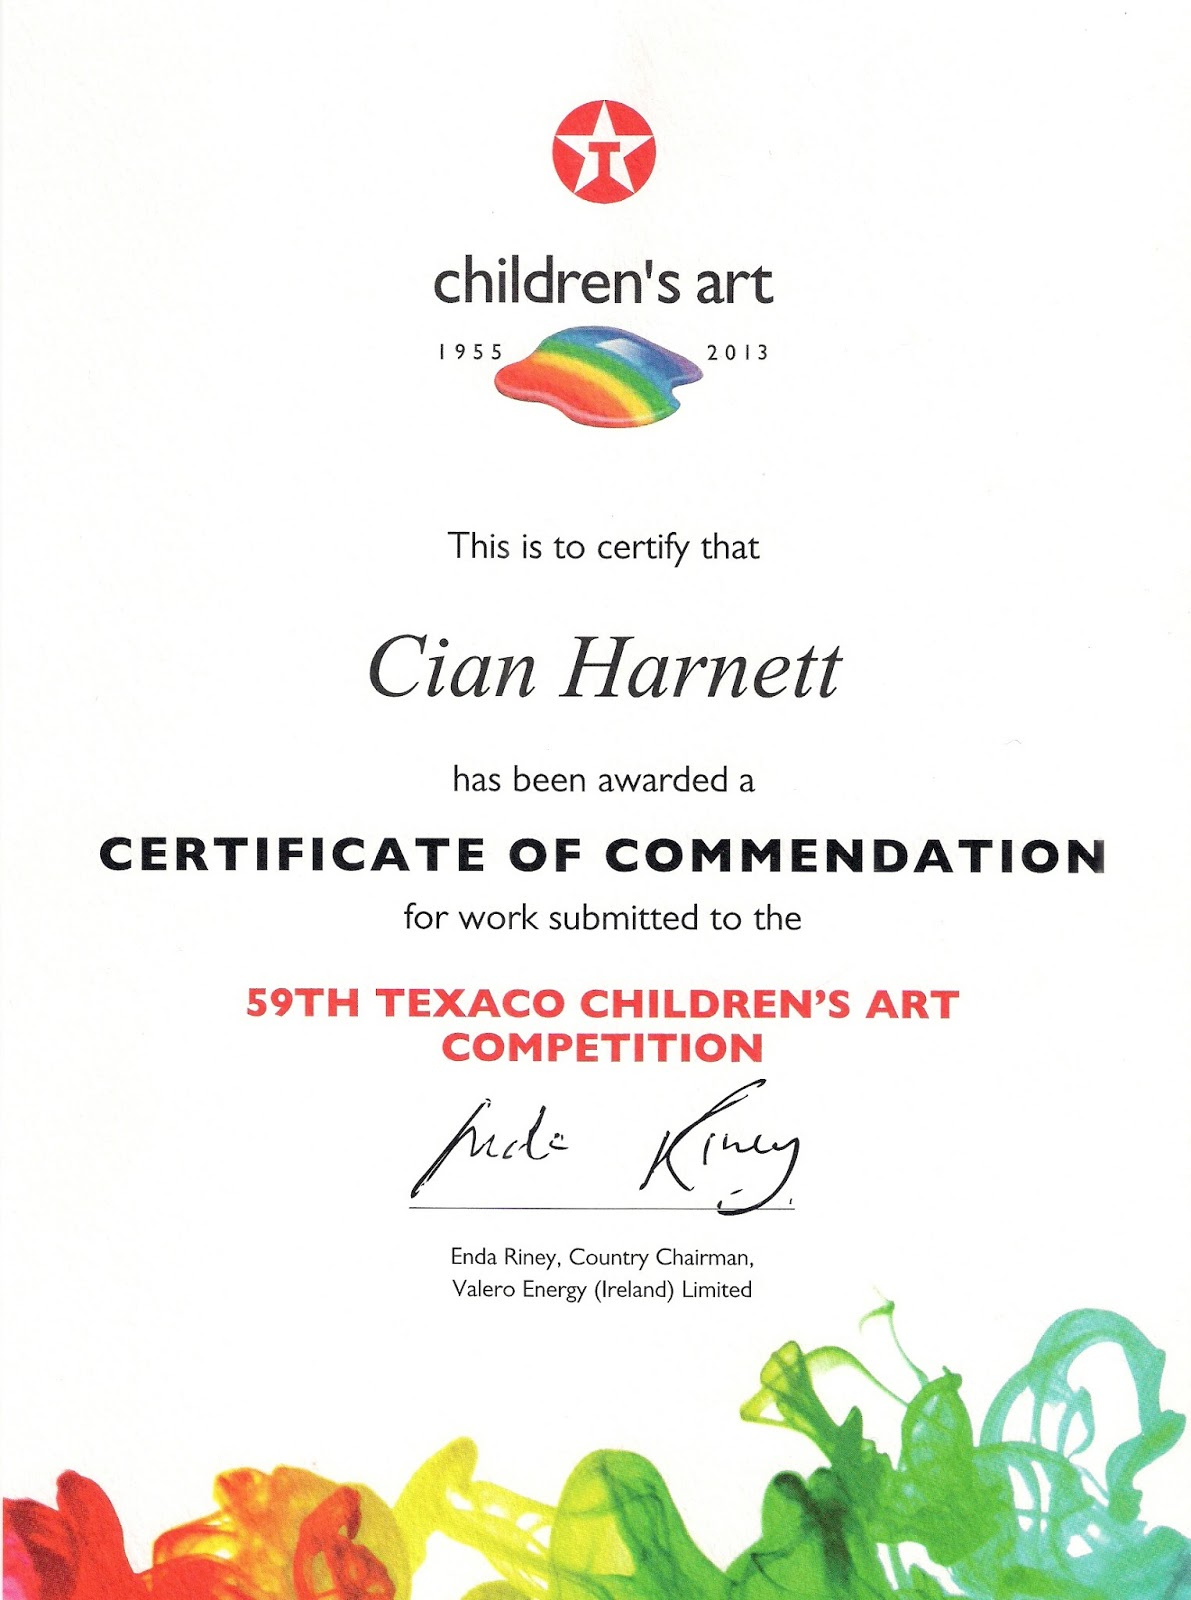 Art certificate template gallery templates example free download art competition certificate template images certificate design pca art blog texaco art competition 2013 texaco art yelopaper Images